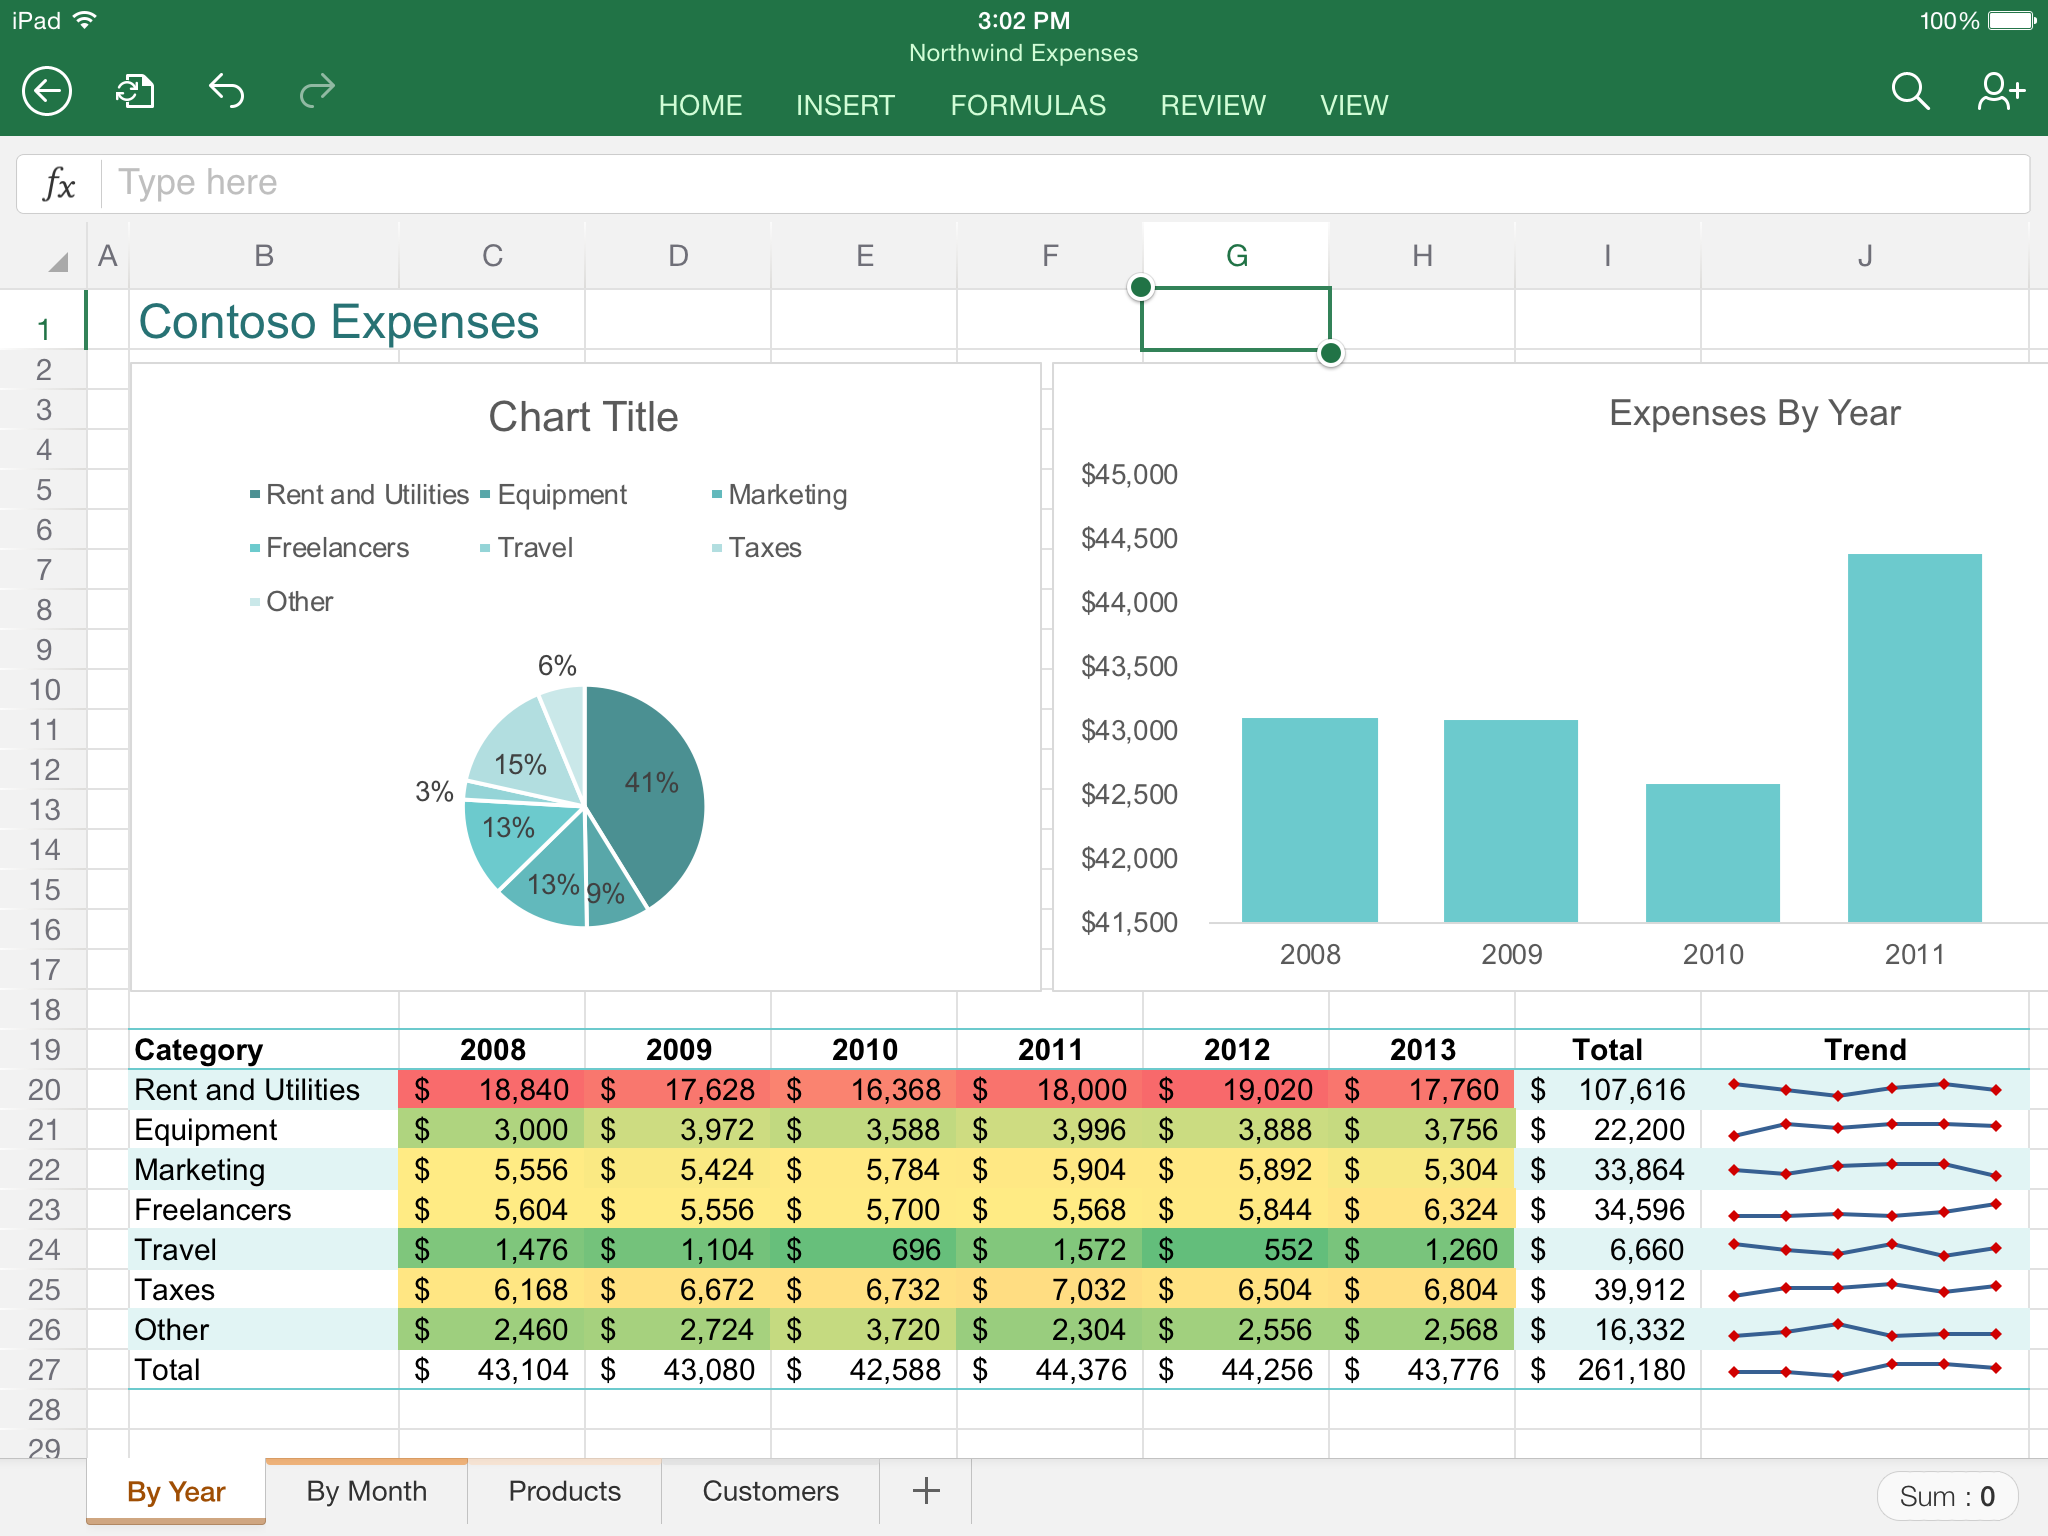 Ediblewildsus  Outstanding App Highlight Excel  Mobile Digital Now With Handsome Excel In Action With Nice Excel Current Date Function Also Unhide Command Excel In Addition Excel To Jpeg And Auto Recovery Excel As Well As Analyze Data In Excel Additionally Excel Formula Wildcard From Youstonybrookedu With Ediblewildsus  Handsome App Highlight Excel  Mobile Digital Now With Nice Excel In Action And Outstanding Excel Current Date Function Also Unhide Command Excel In Addition Excel To Jpeg From Youstonybrookedu